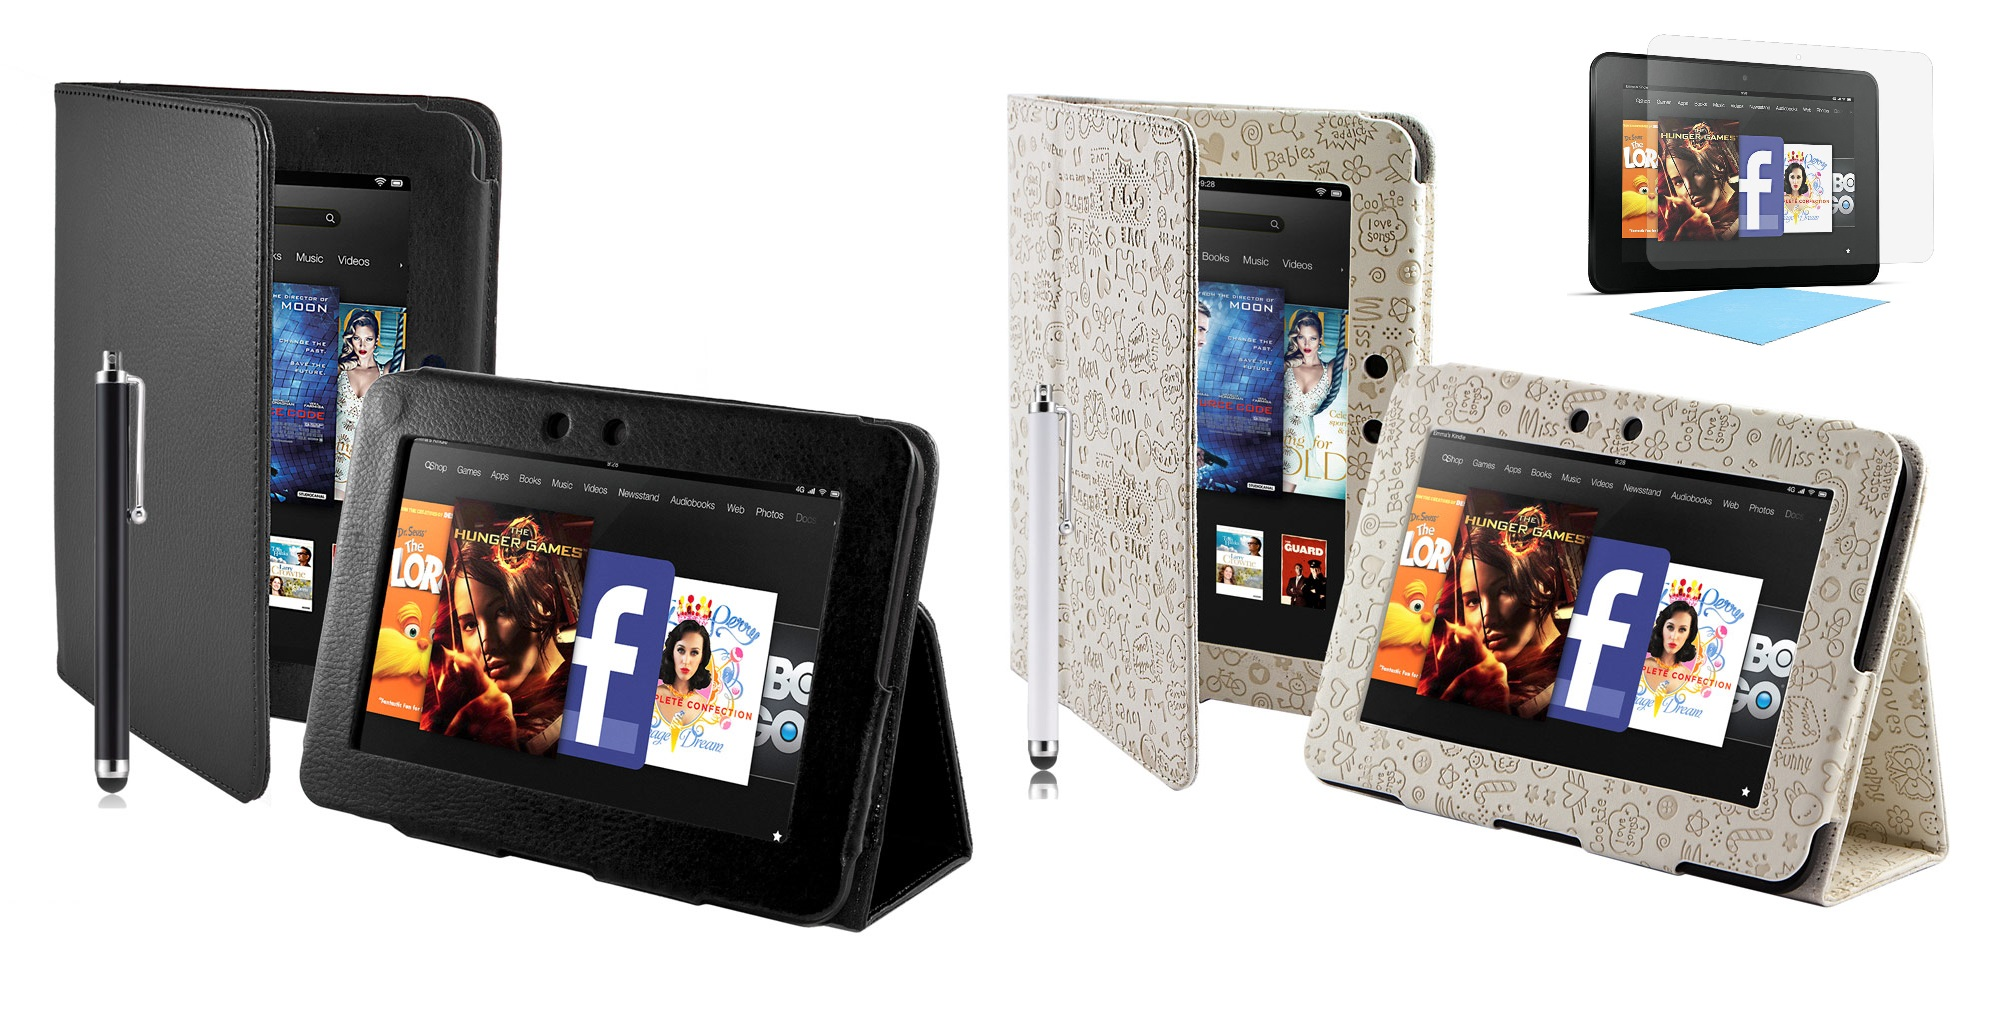 how to delete books from kindle fire cloud